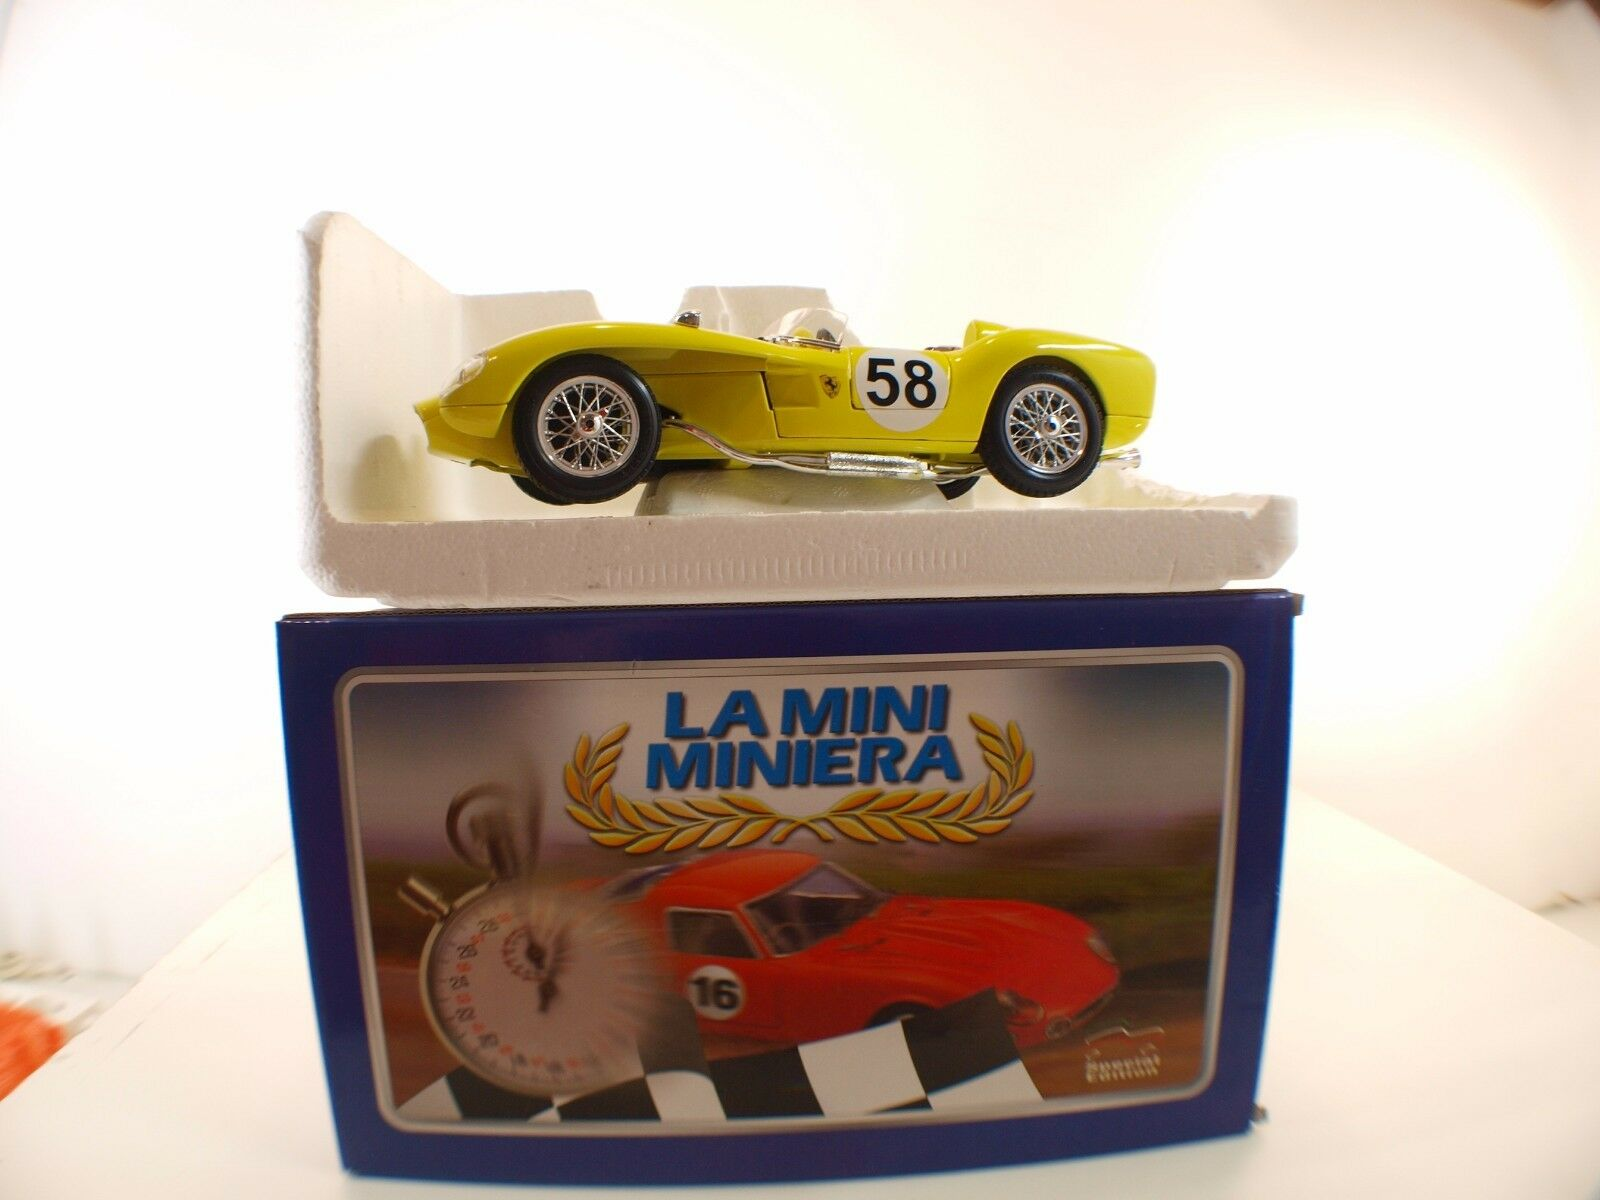 La mini miniera 250 ferrari testa rossa 1957  58 1 18 nine mib box